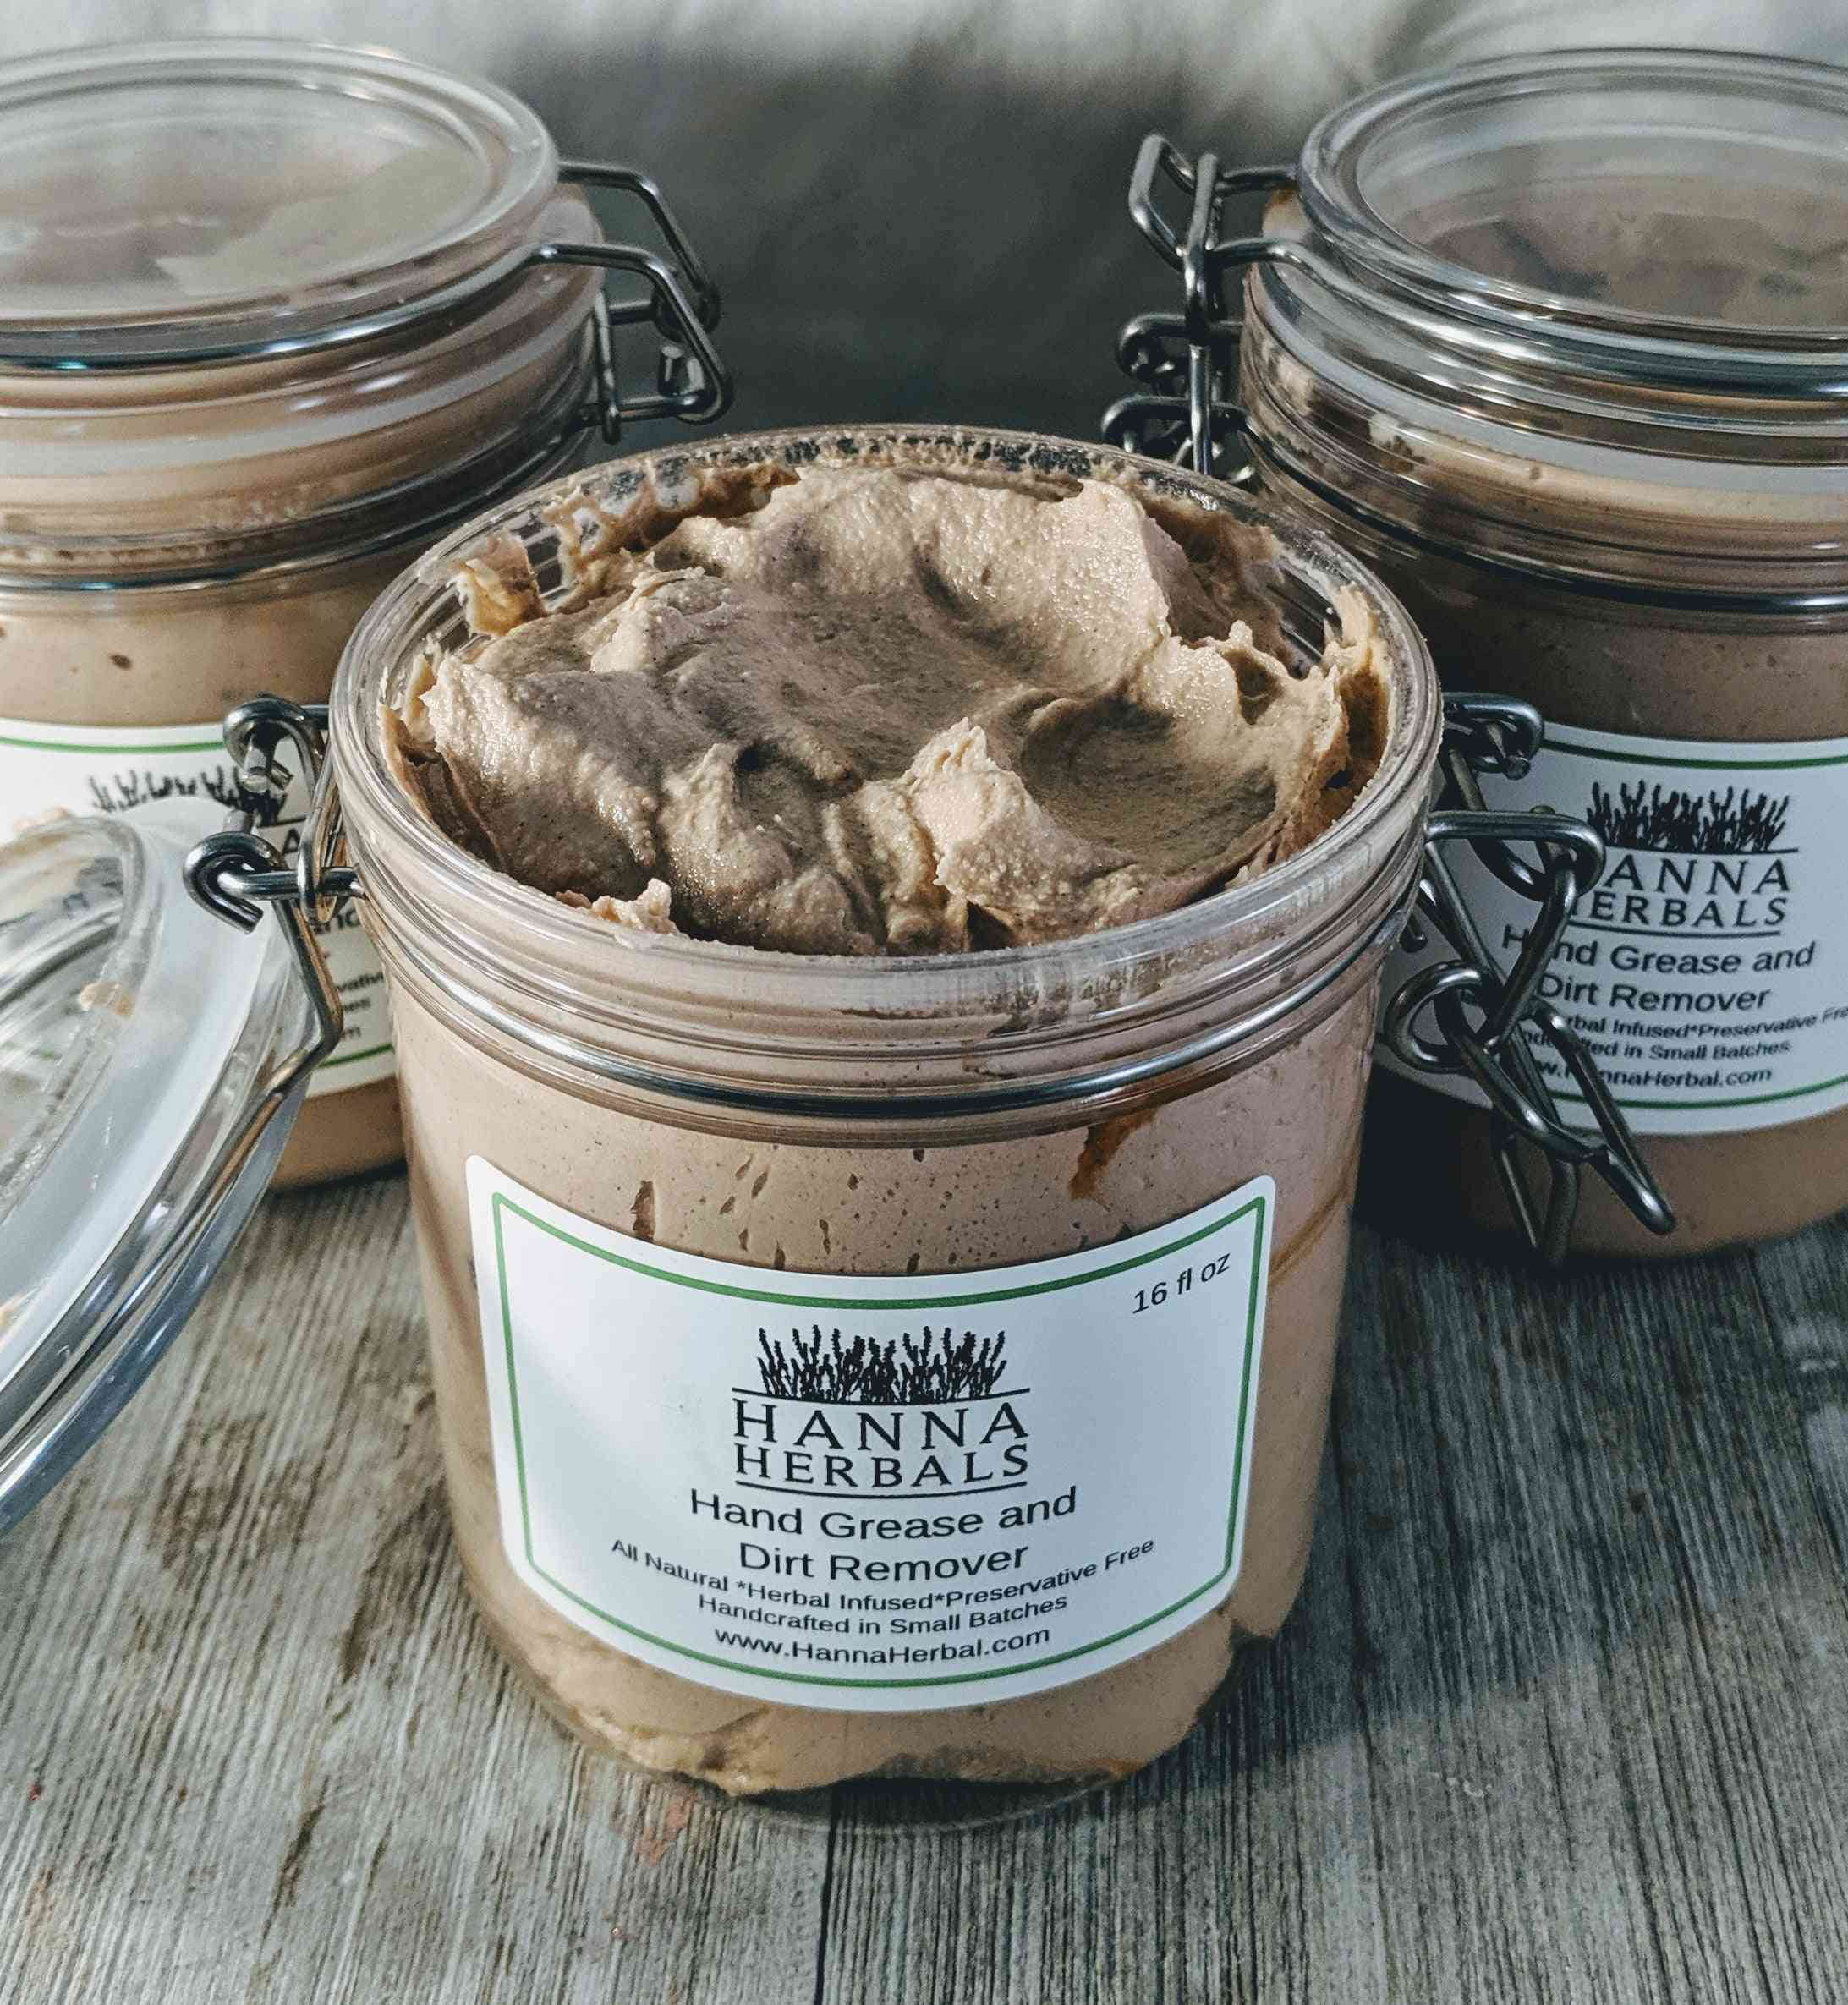 Hand Scrub For Dirt And Grease Remover